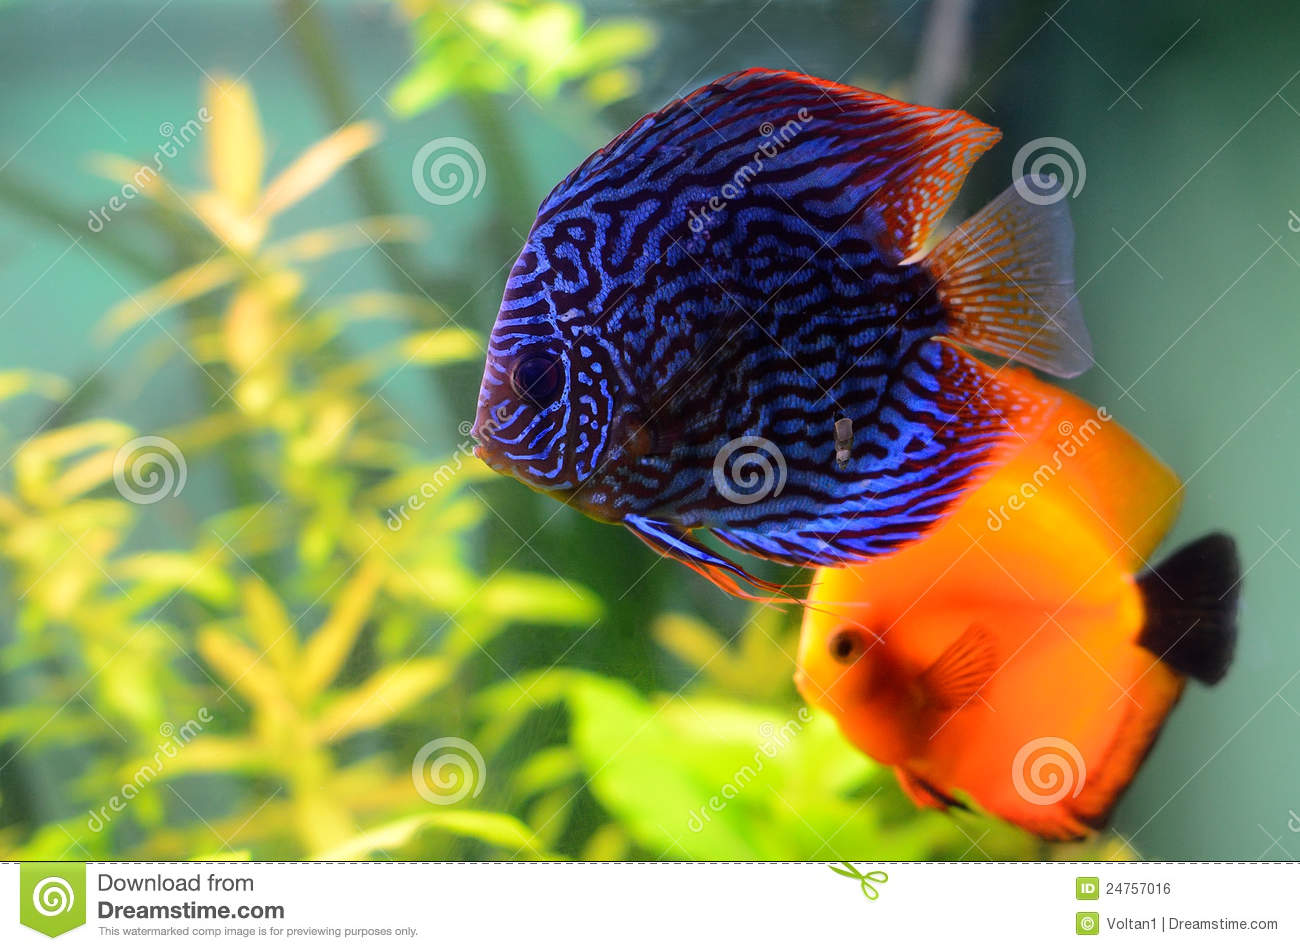 Blue and orange discus fish royalty free stock image for Pesce discus